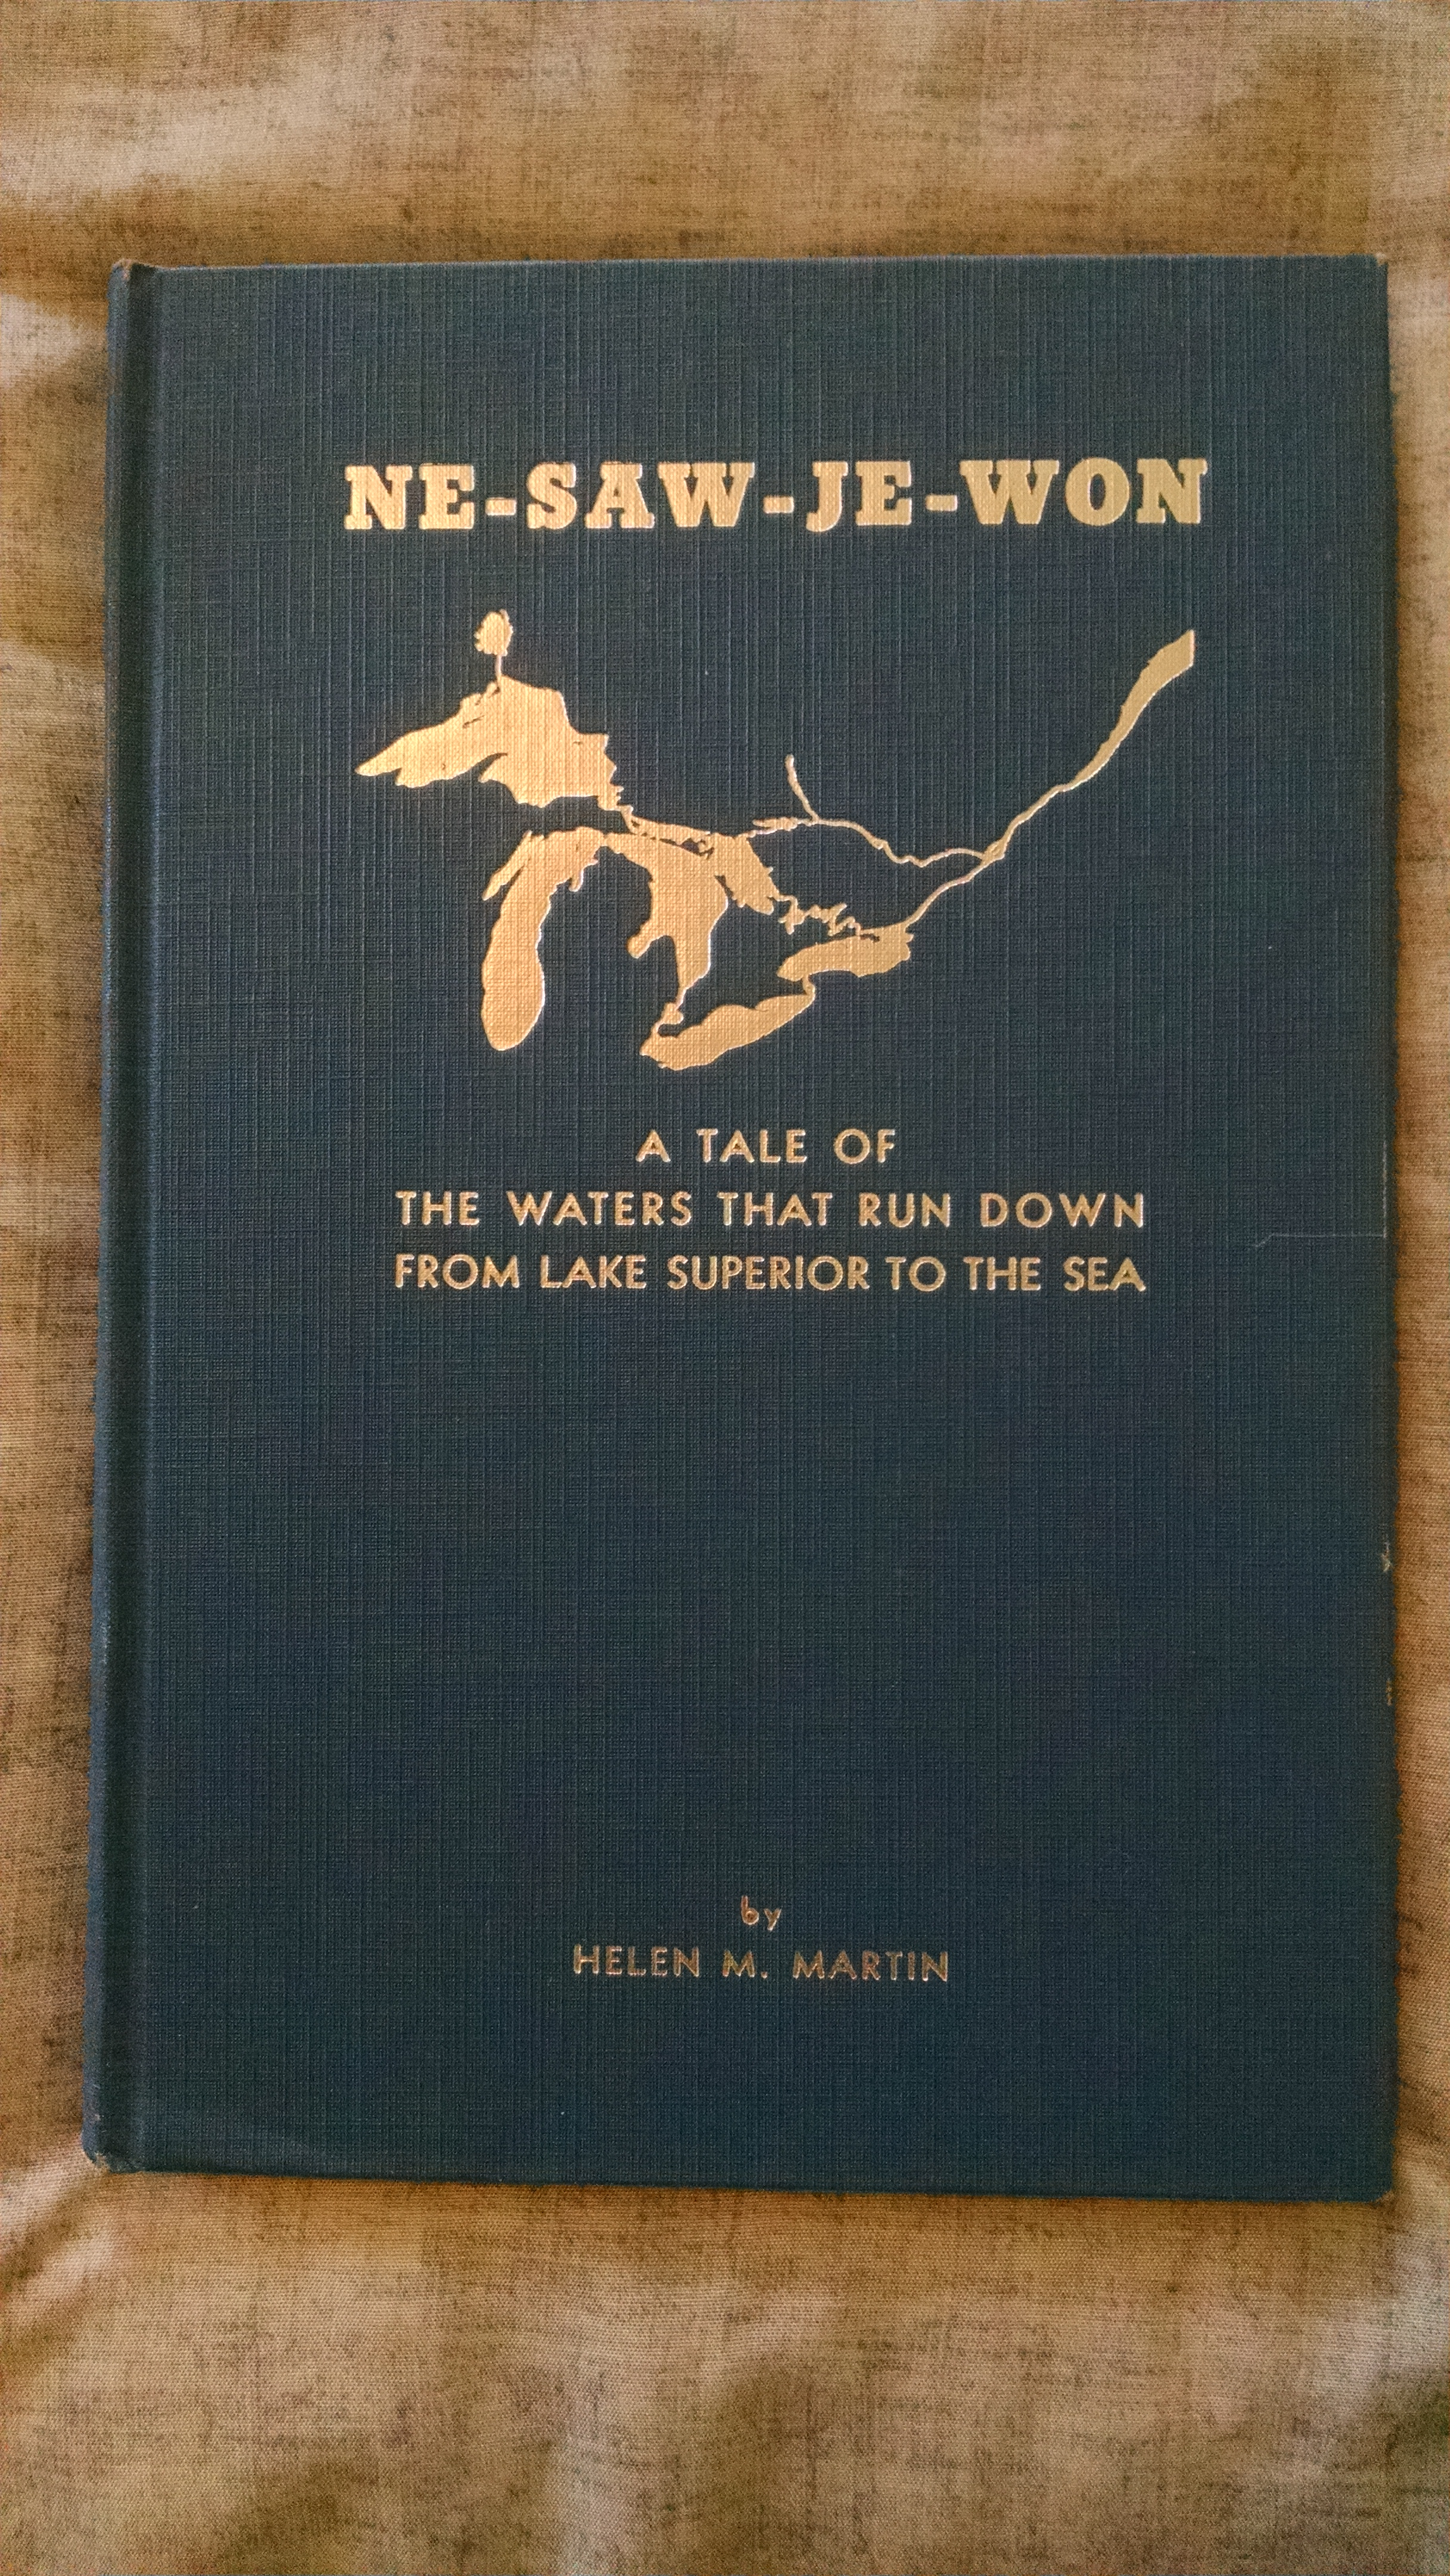 Image for Ne-Saw-Je-Won; A Tale of the Waters That Run Down from Lake Superior to the Sea  (Presentation copy)